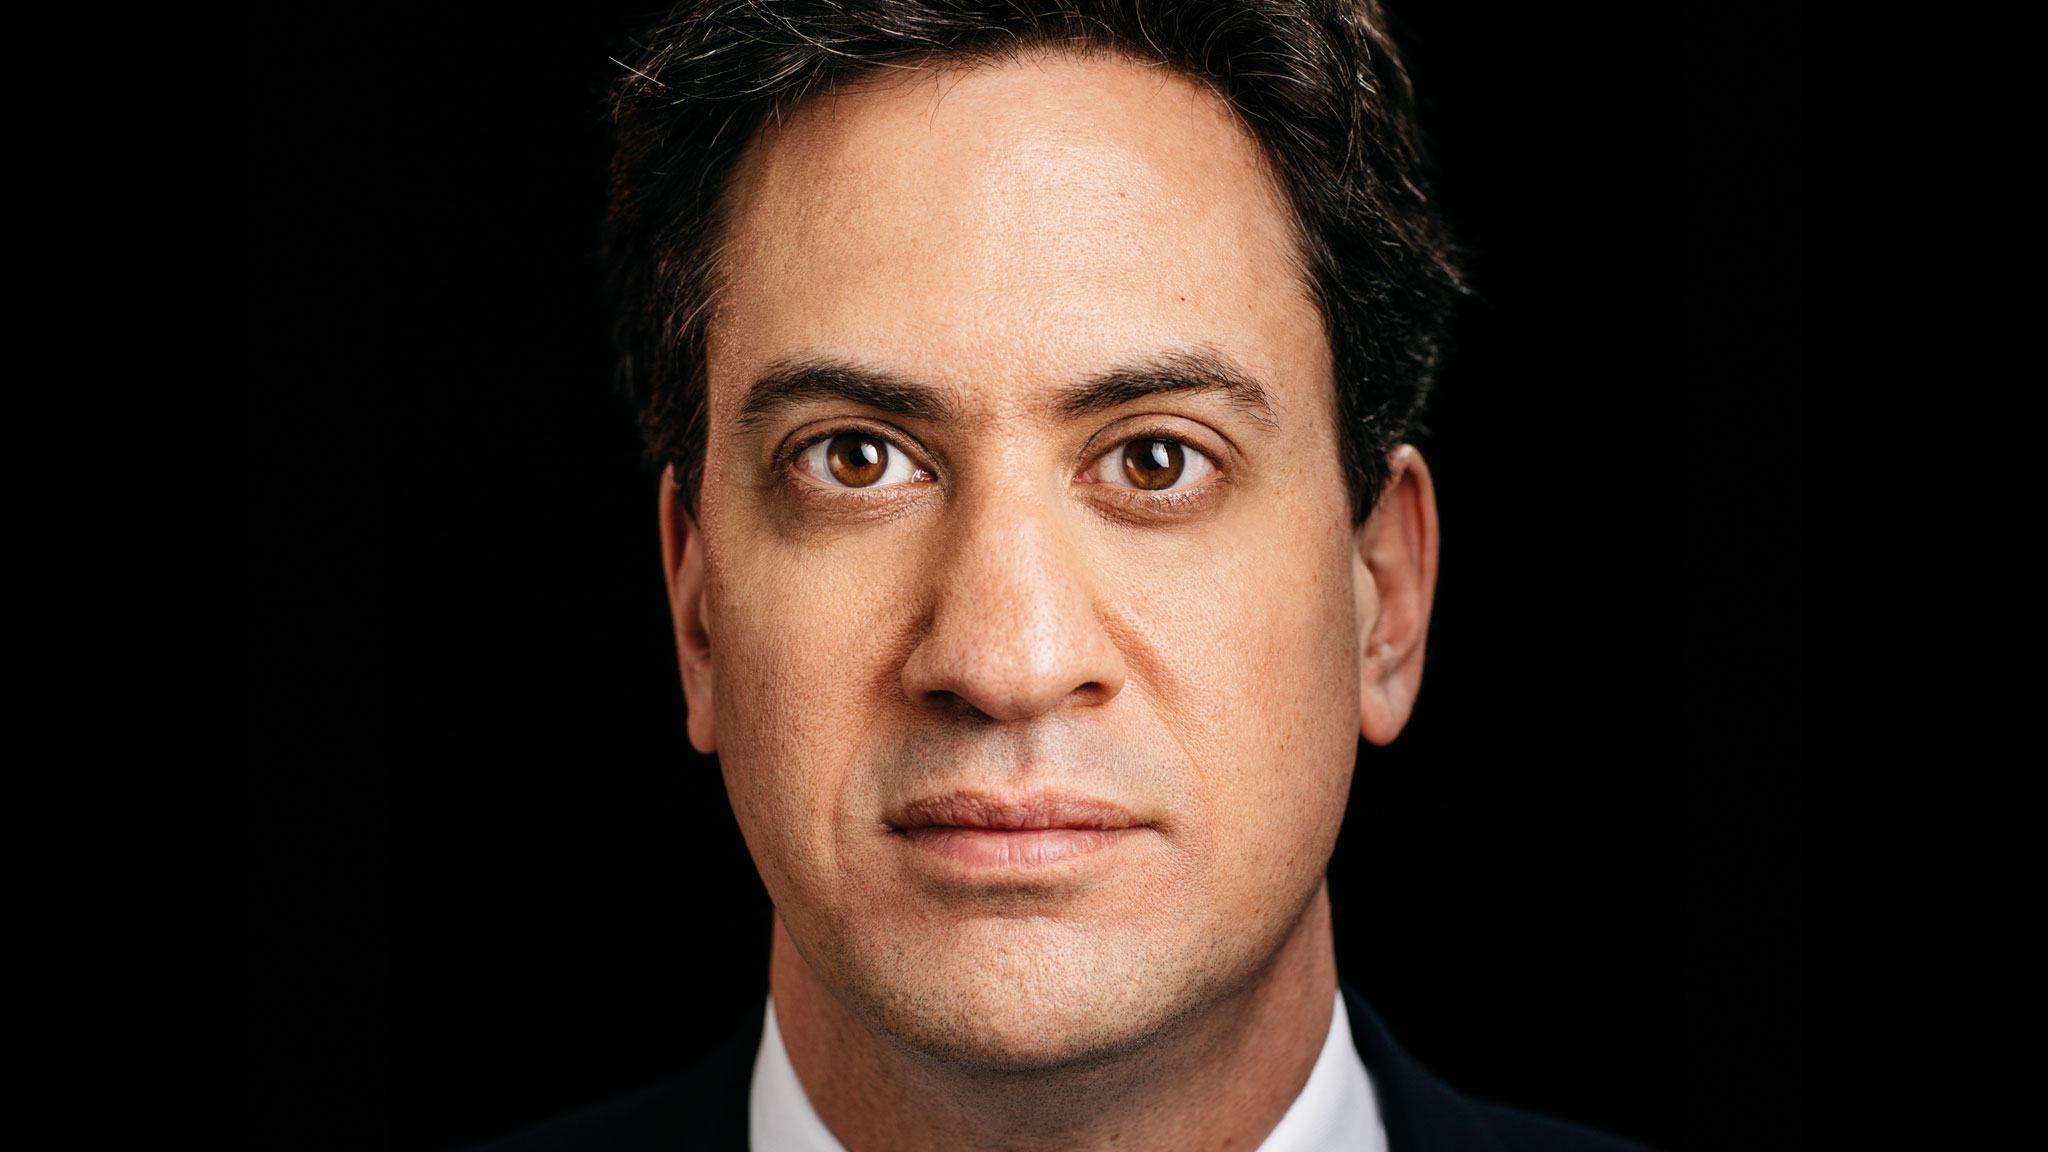 Exclusive interview: Is Ed Miliband ready?